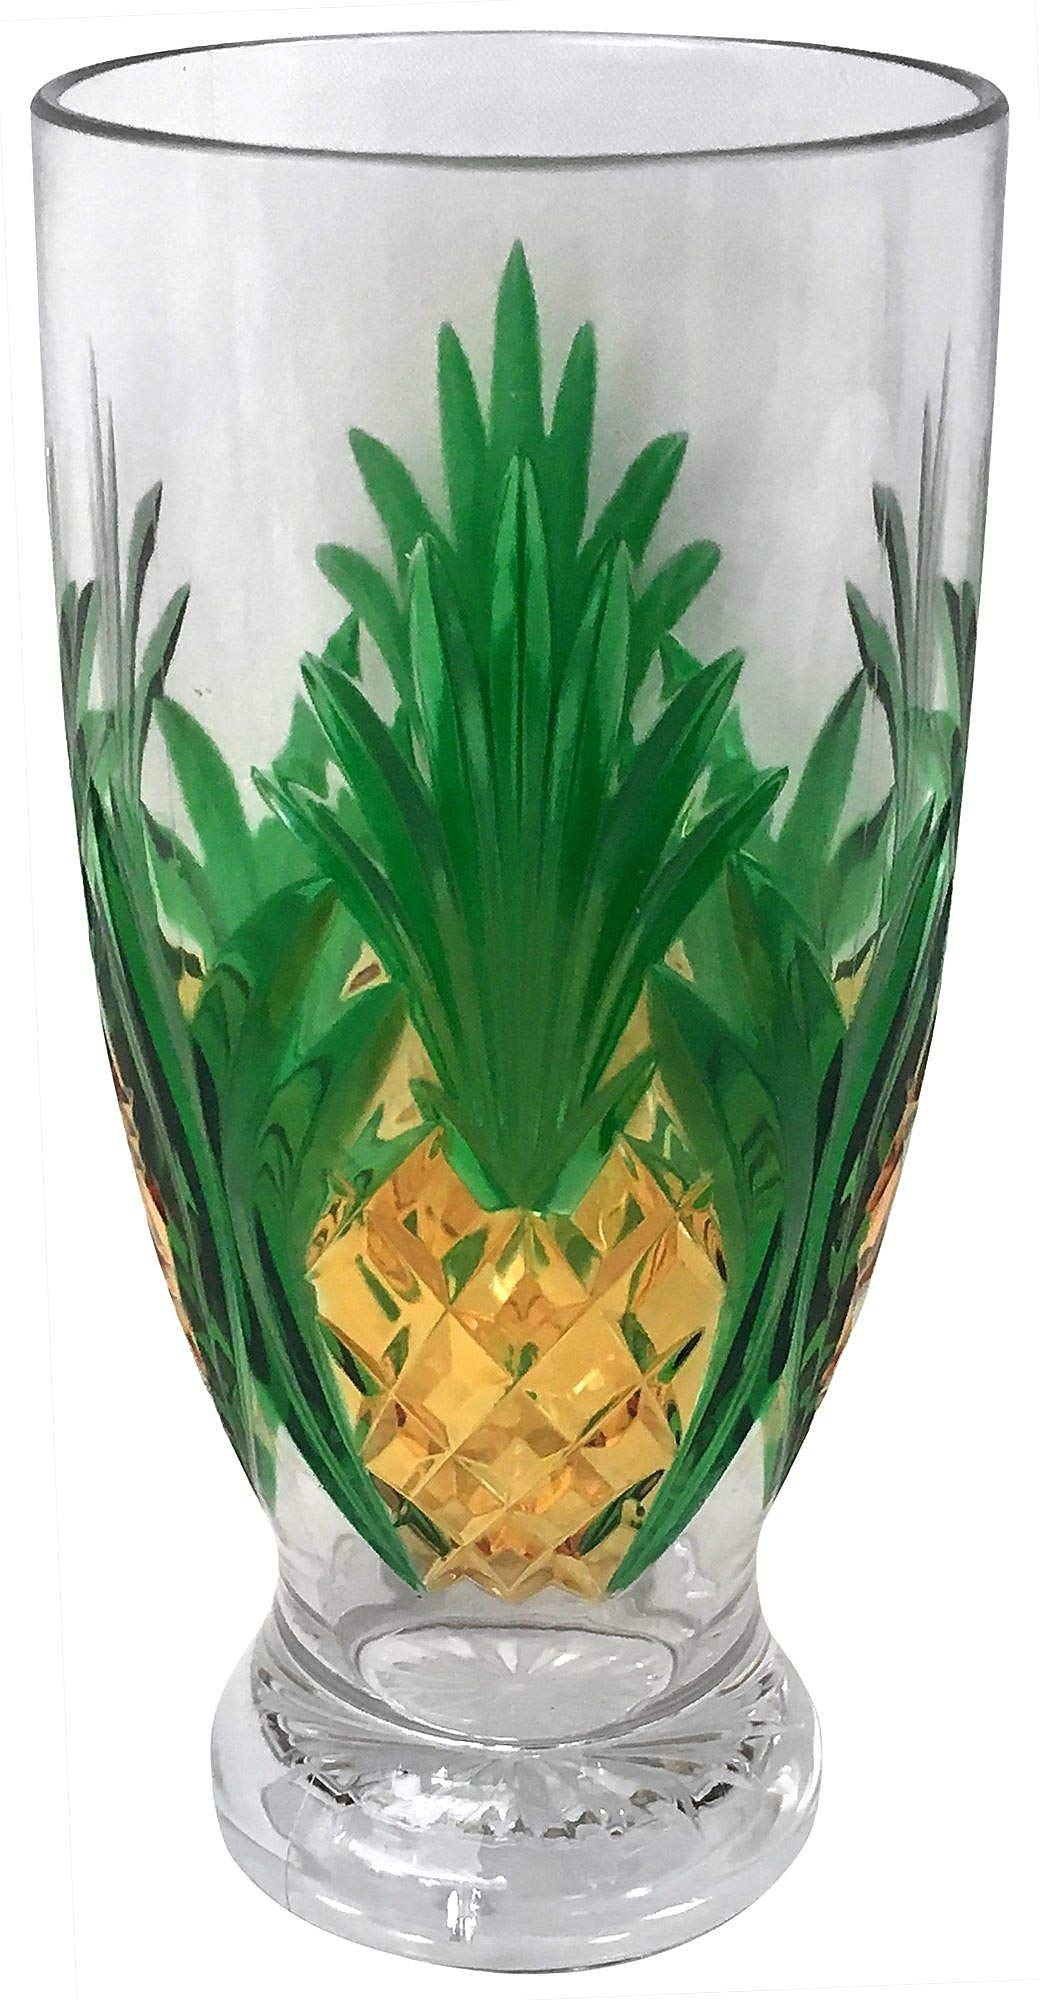 Coastal Home Bamboo Breeze Etched Pineapple Highball Glass One Size Yellow/green